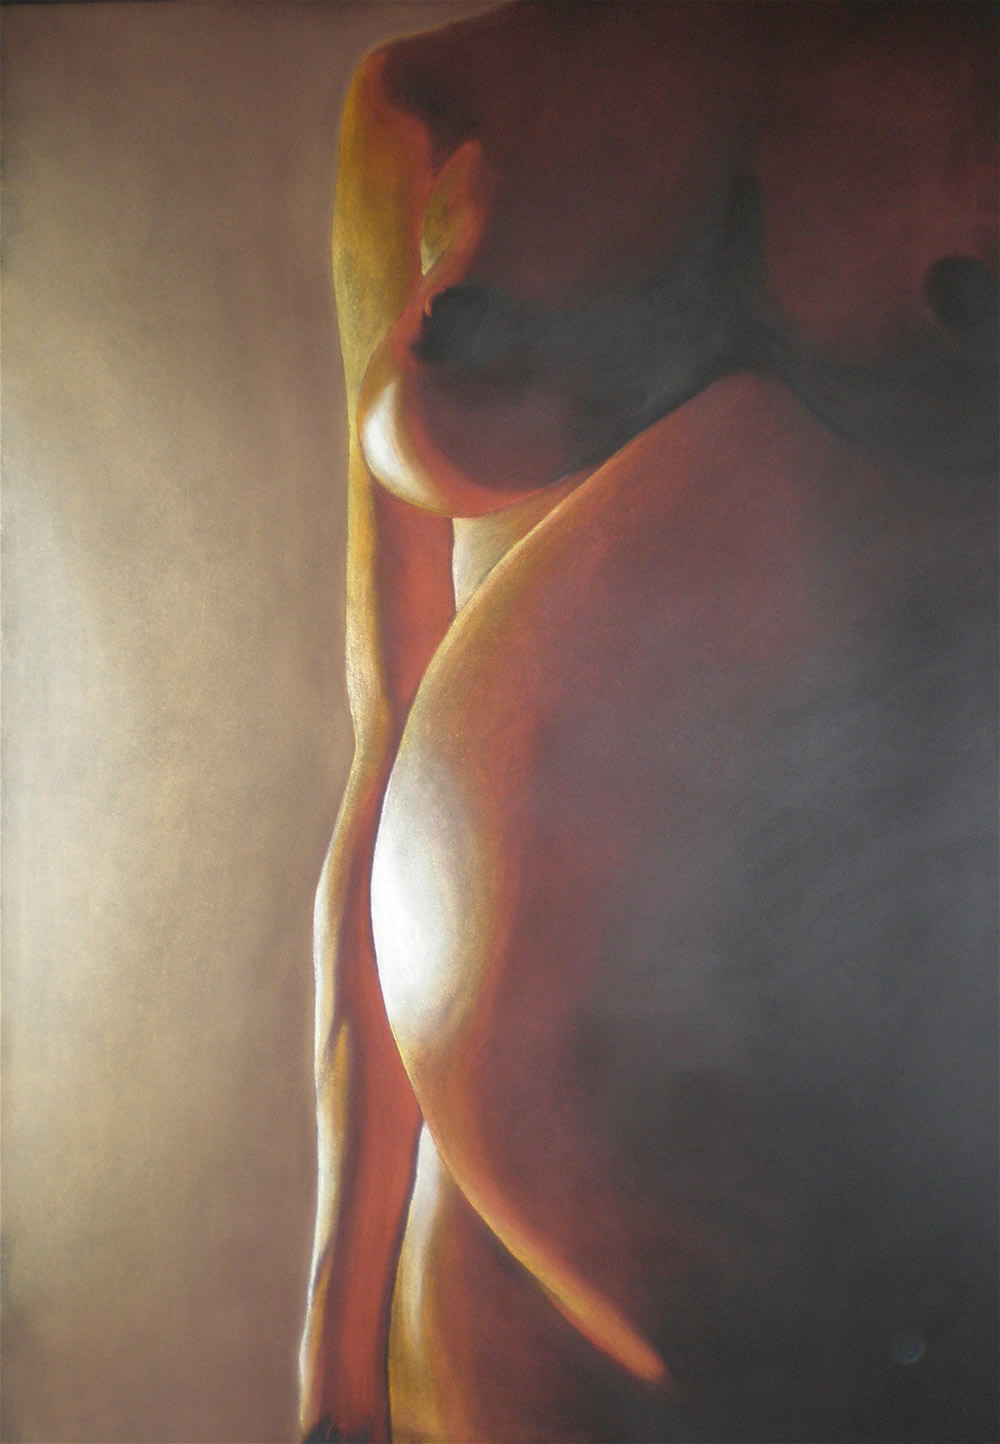 Chrissy Thirlaway, Fertility Goddess, Pastel on paper, 60x84cm